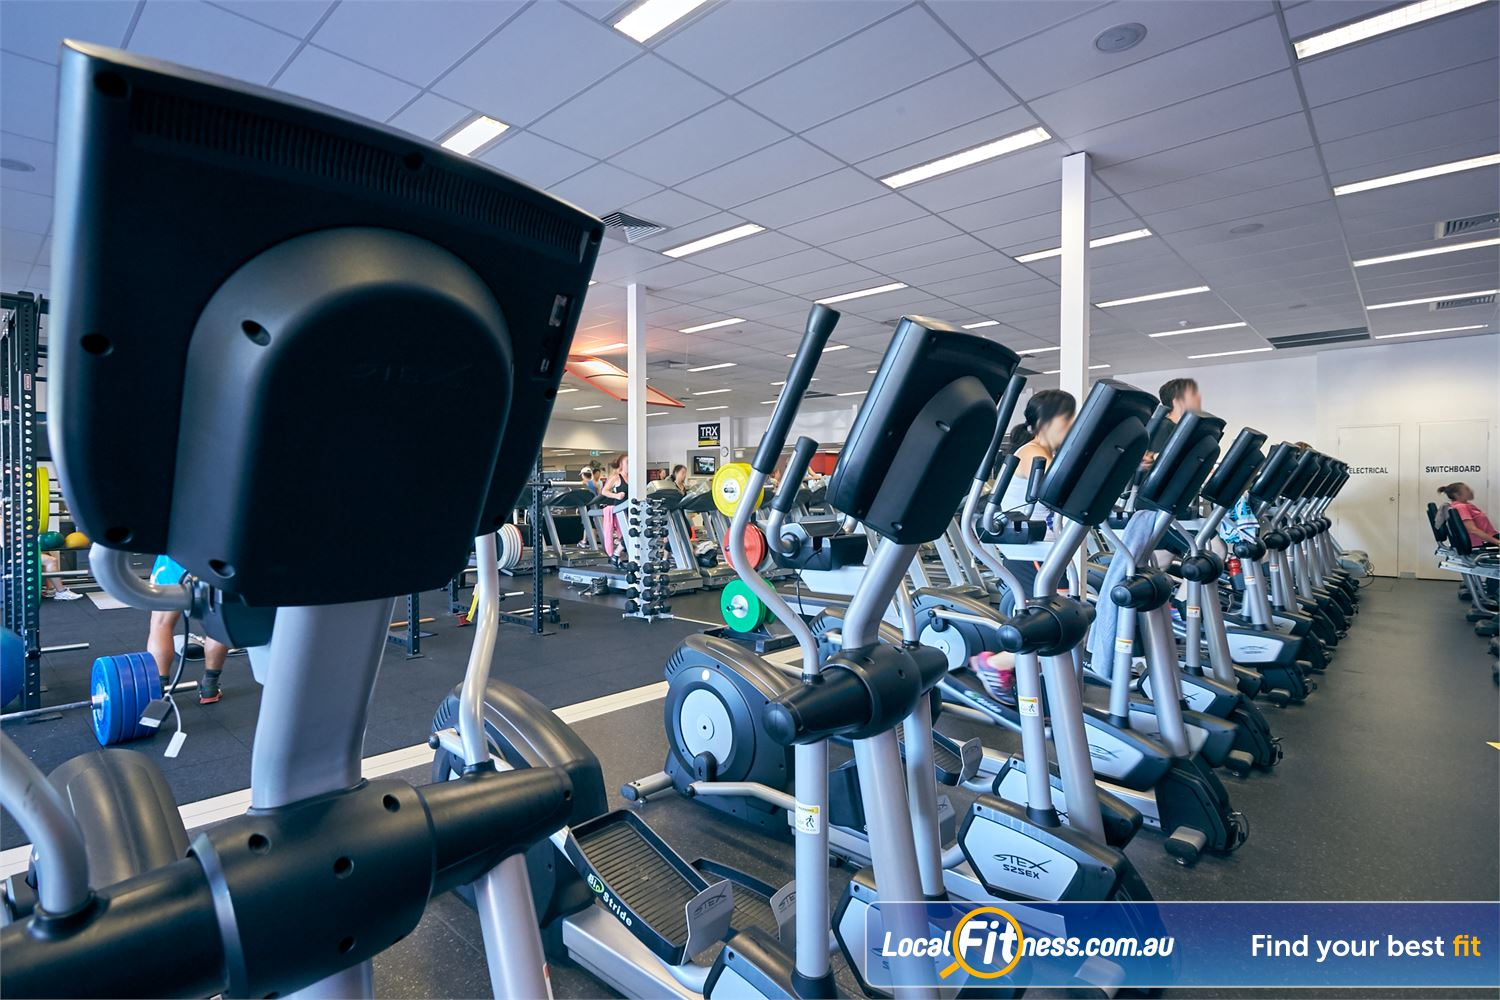 Goodlife Health Clubs Cross Roads Westbourne Park The fully equipped cardio area at Goodlife Cross Roads gym.